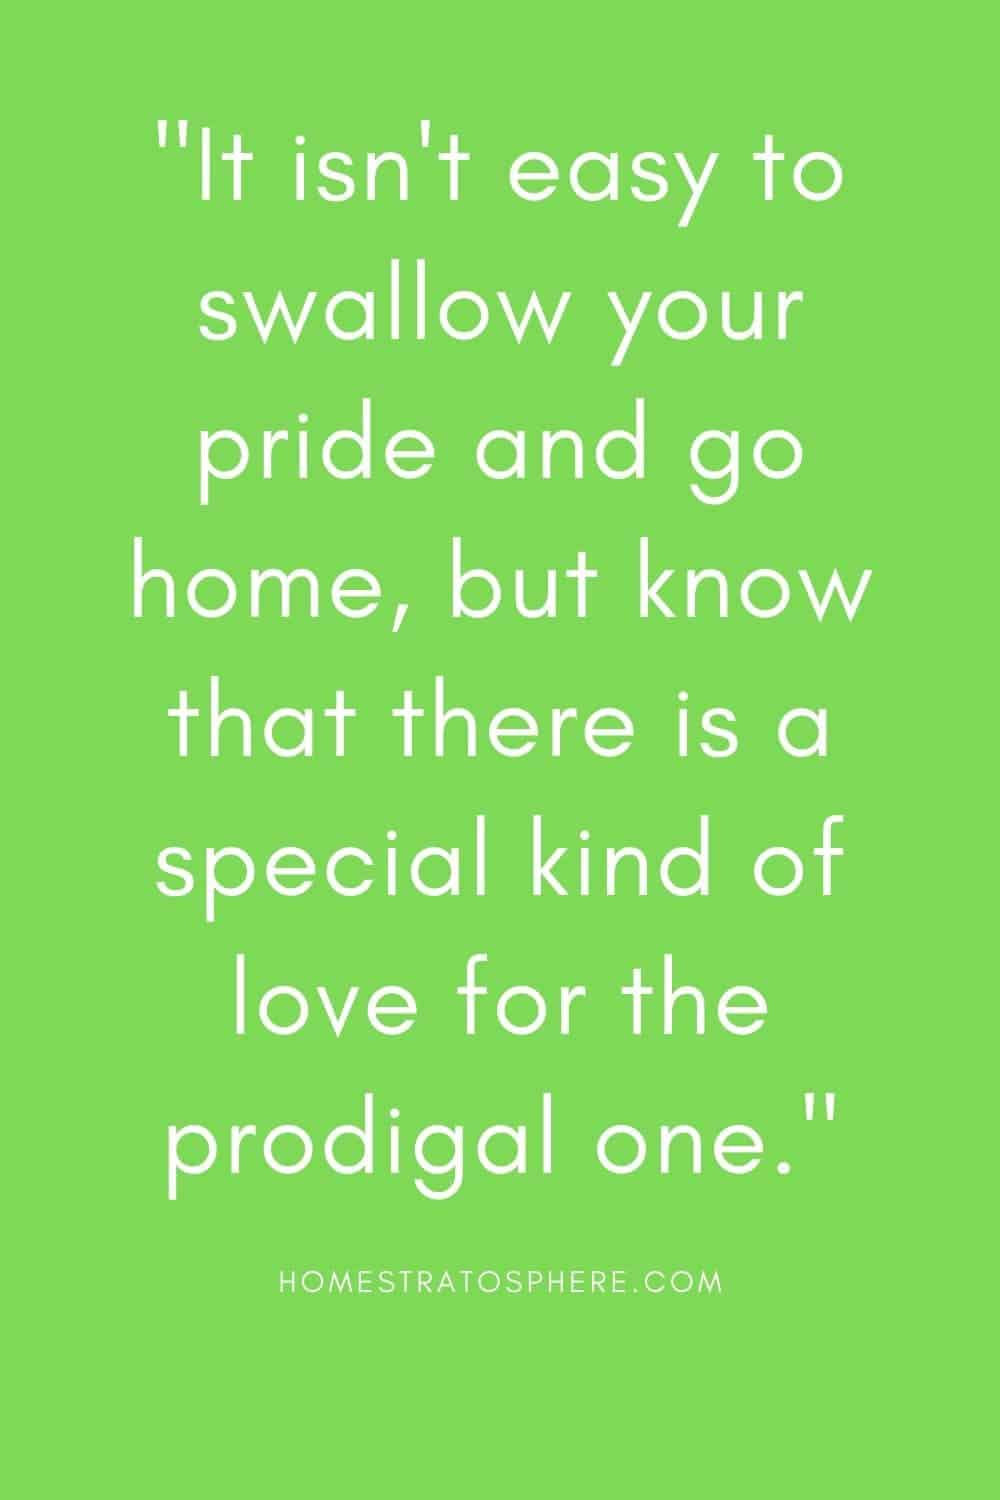 """""""It isn't easy to swallow your pride and go home, but know that there is a special kind of love for the prodigal one."""""""